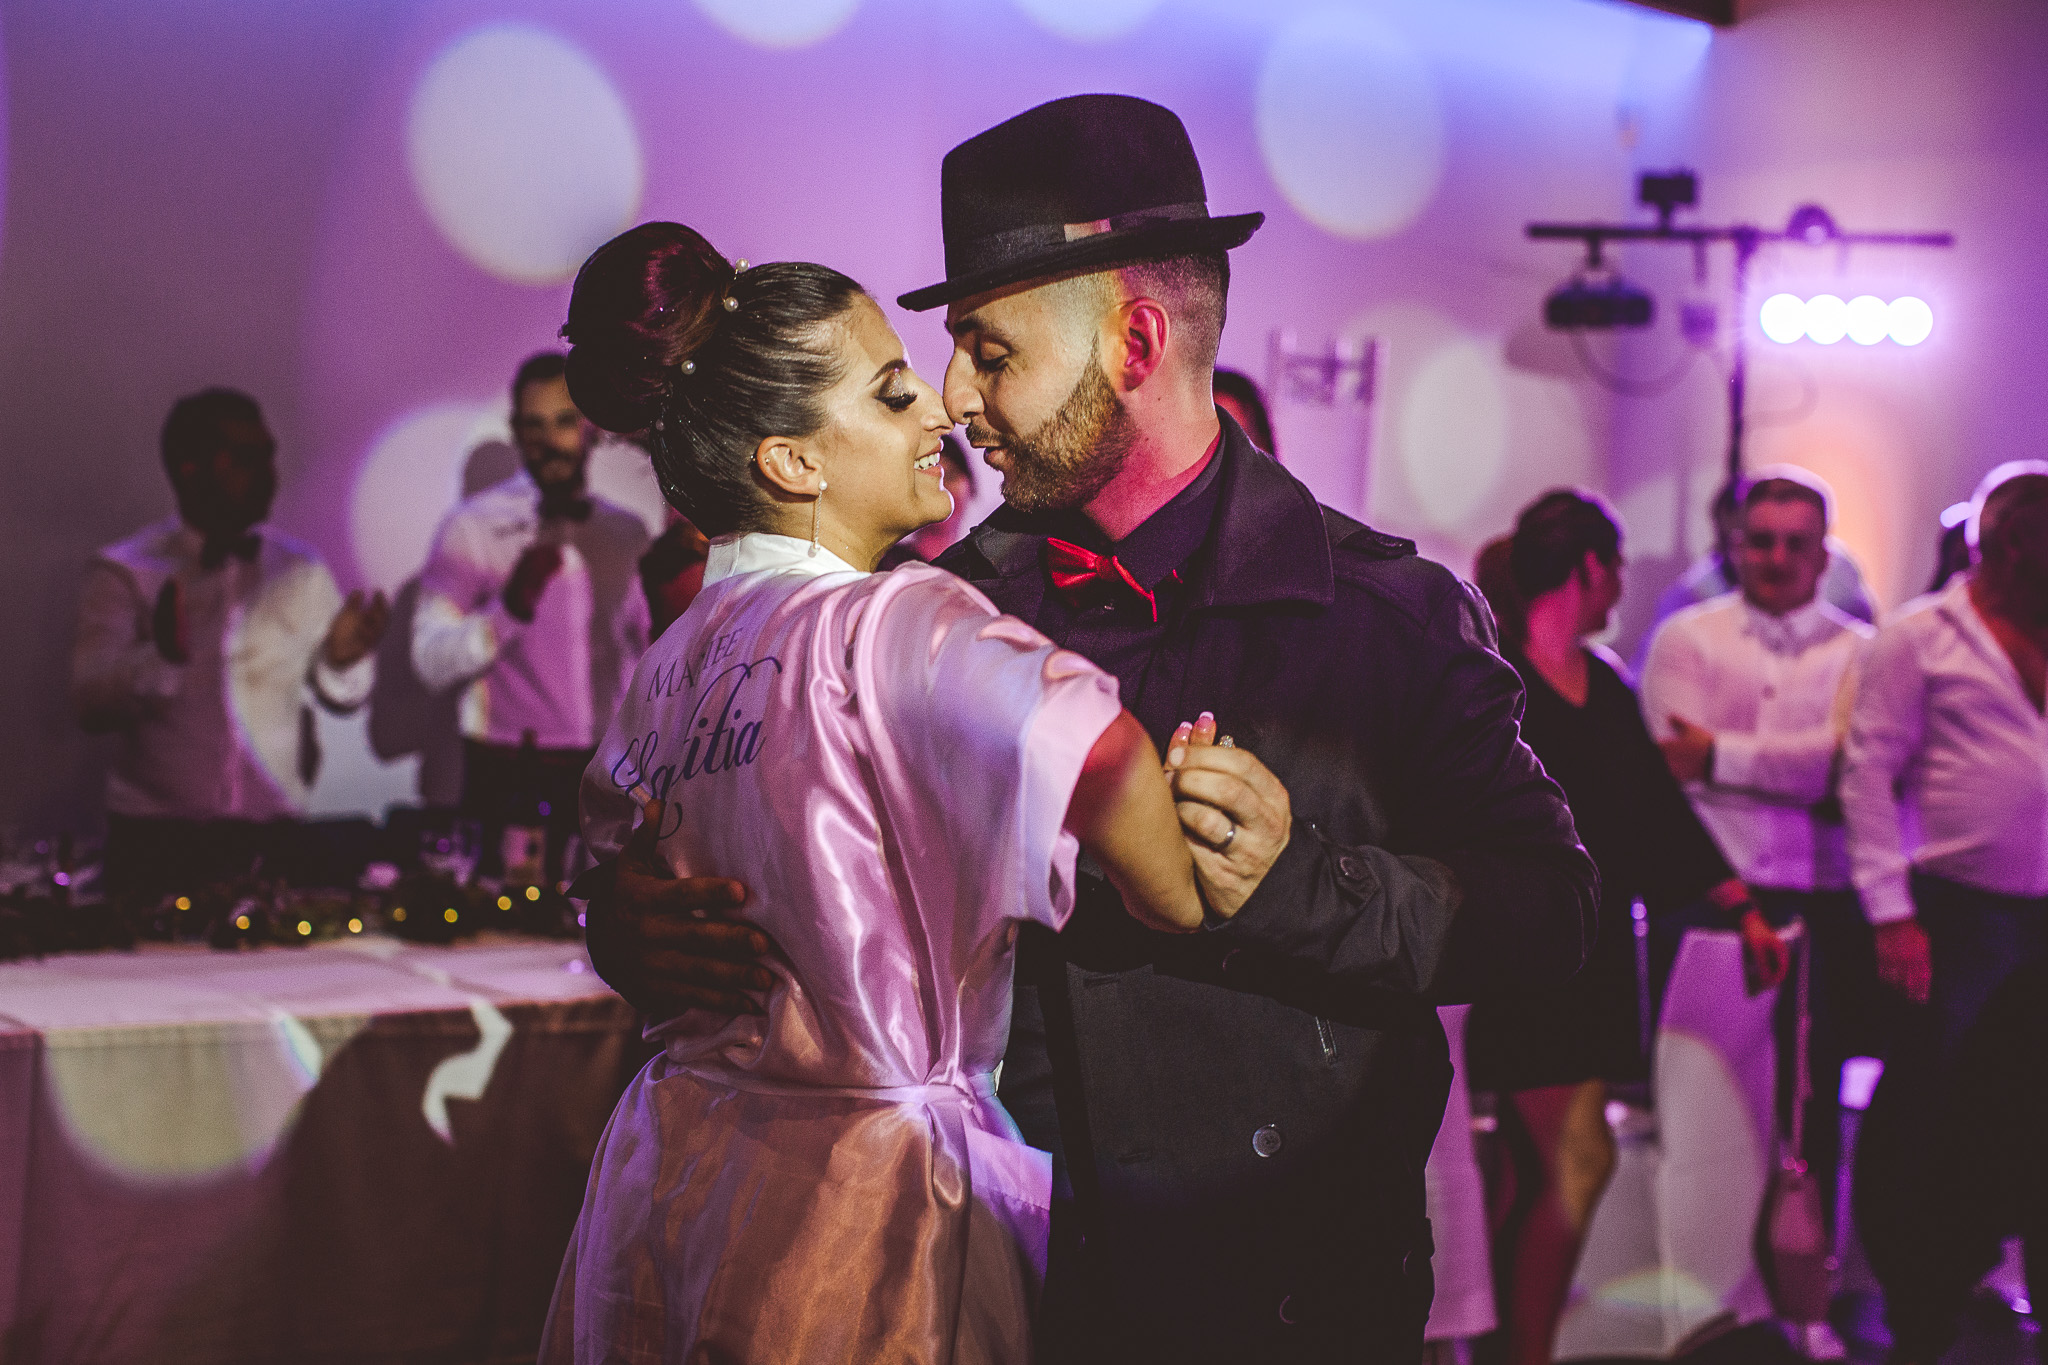 reportage mariage photo soiree premiere danse maries dj muisuqe chateau mons gers